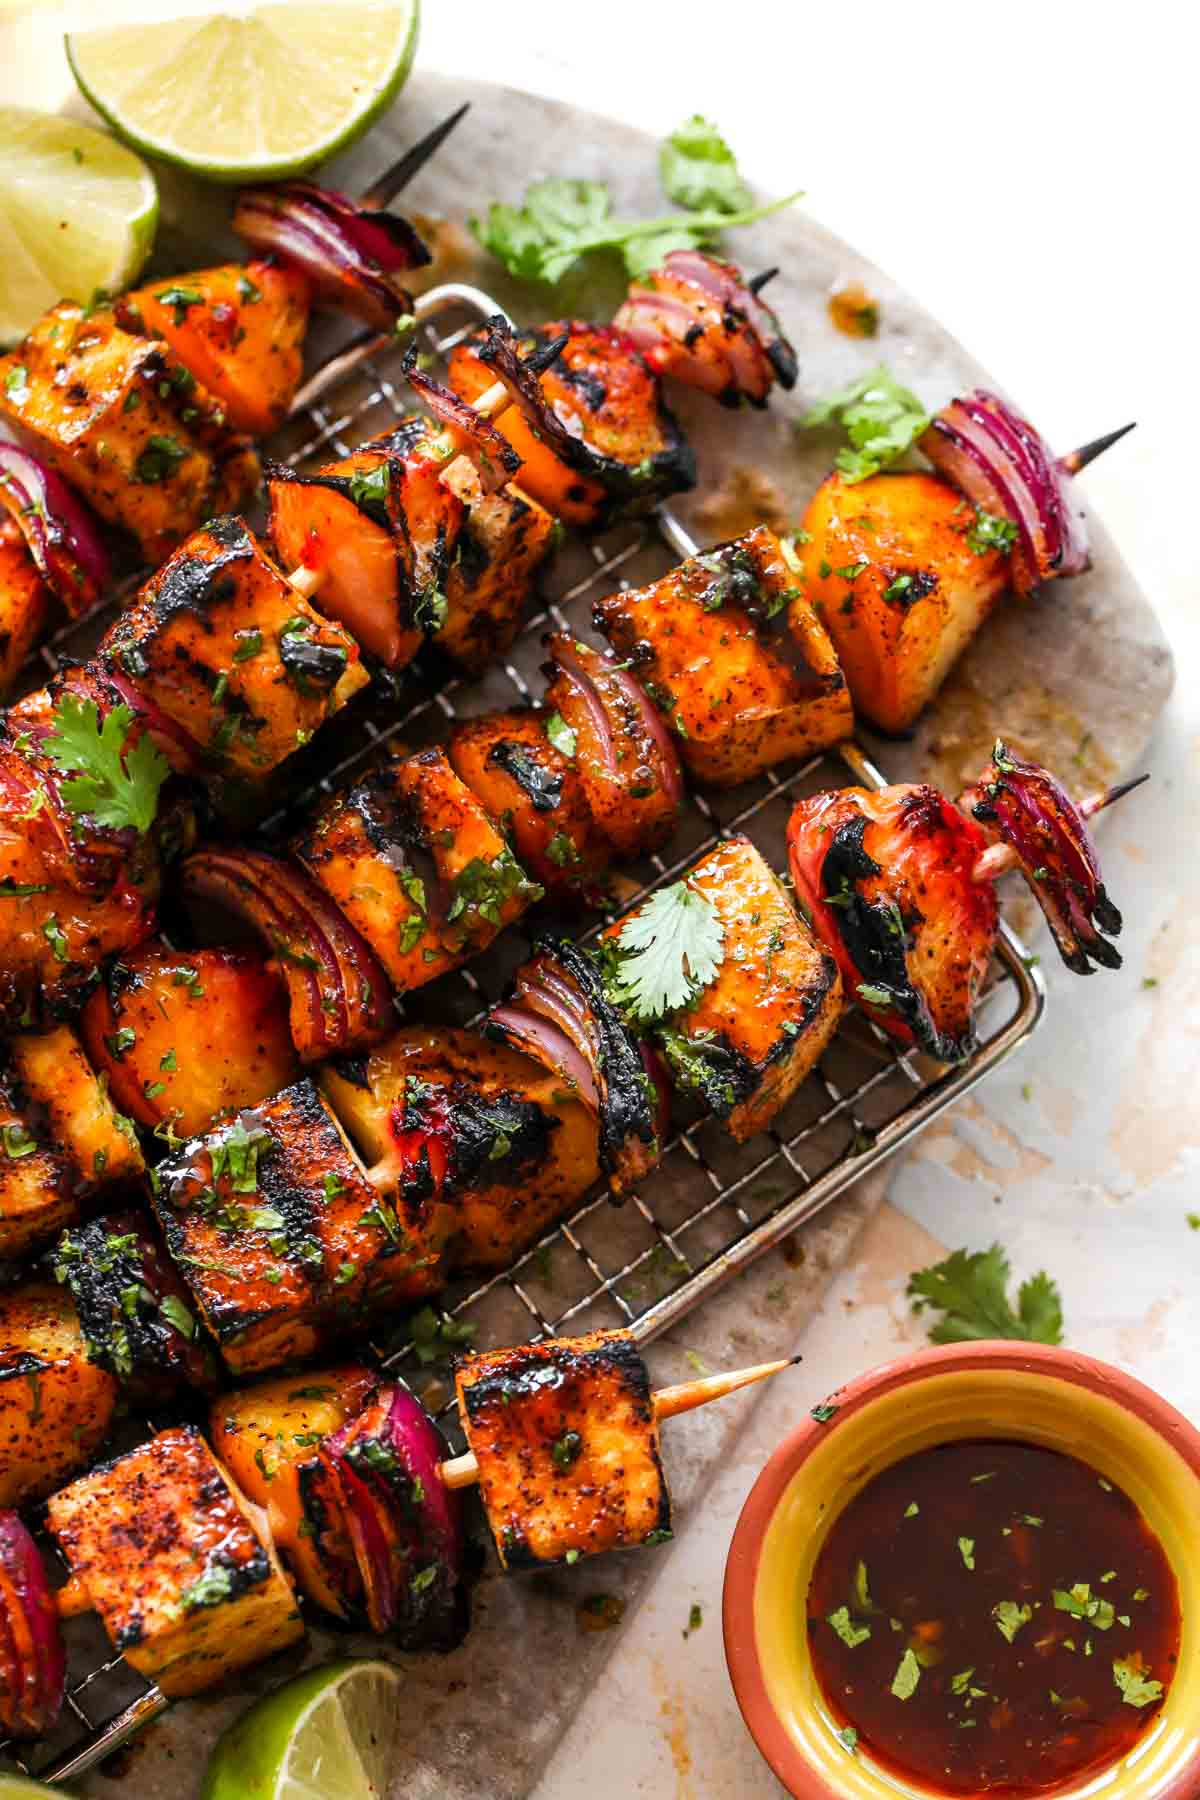 Tofu skewers topped with chili glaze and cilantro